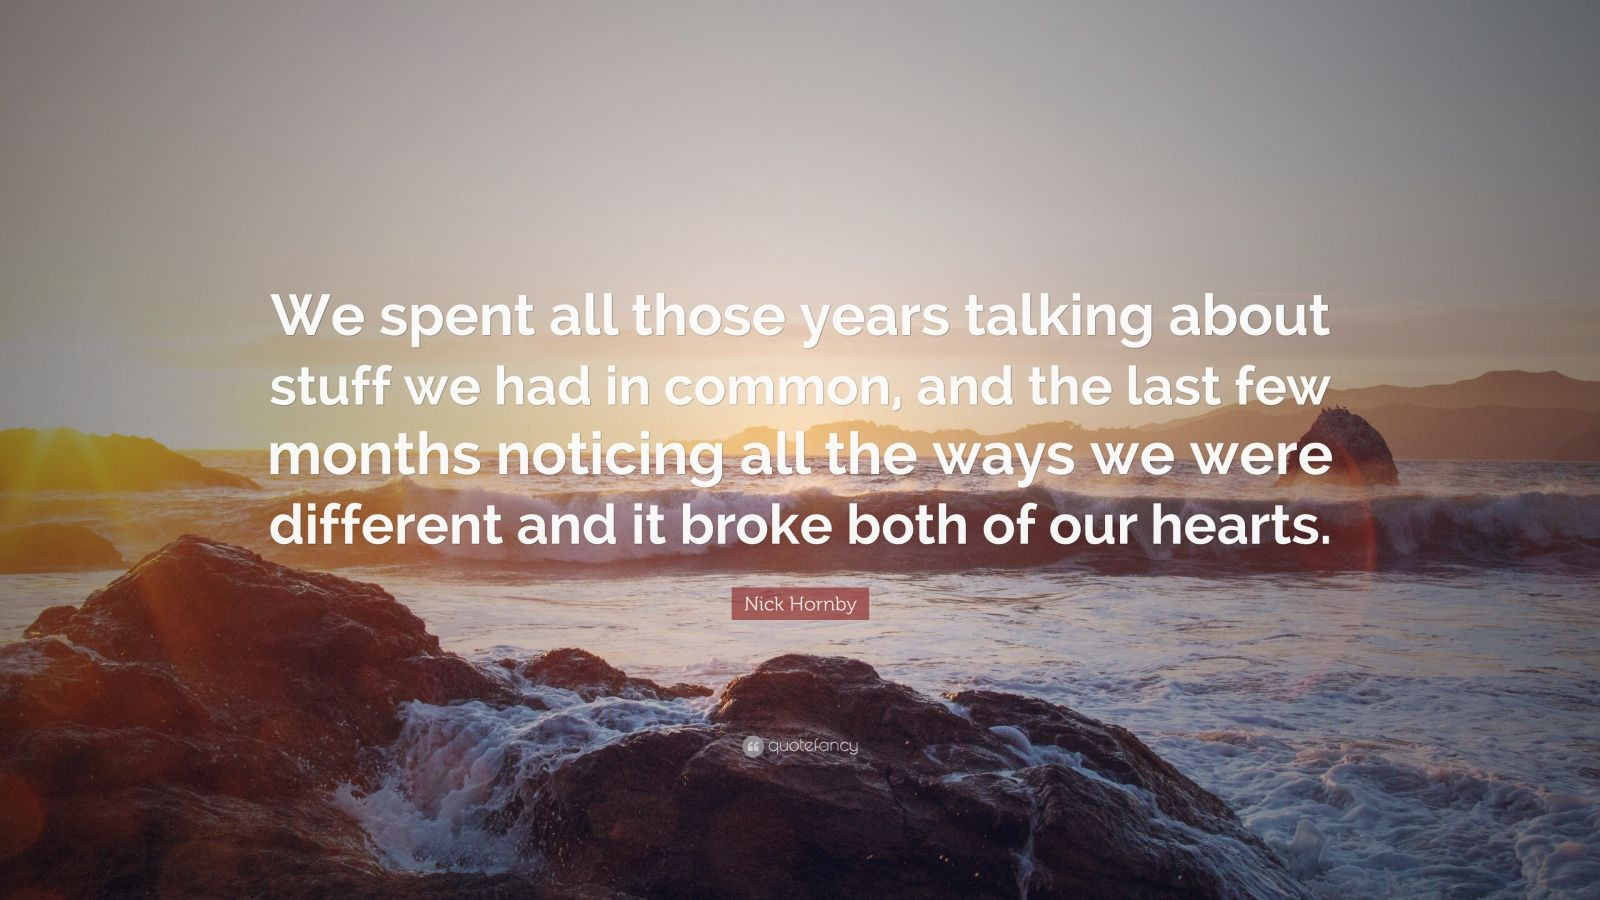 "Nick Hornby Quote: ""We spent all those years talking about stuff we had in common, and the last few months noticing all the ways we were different and it broke both of our hearts."""